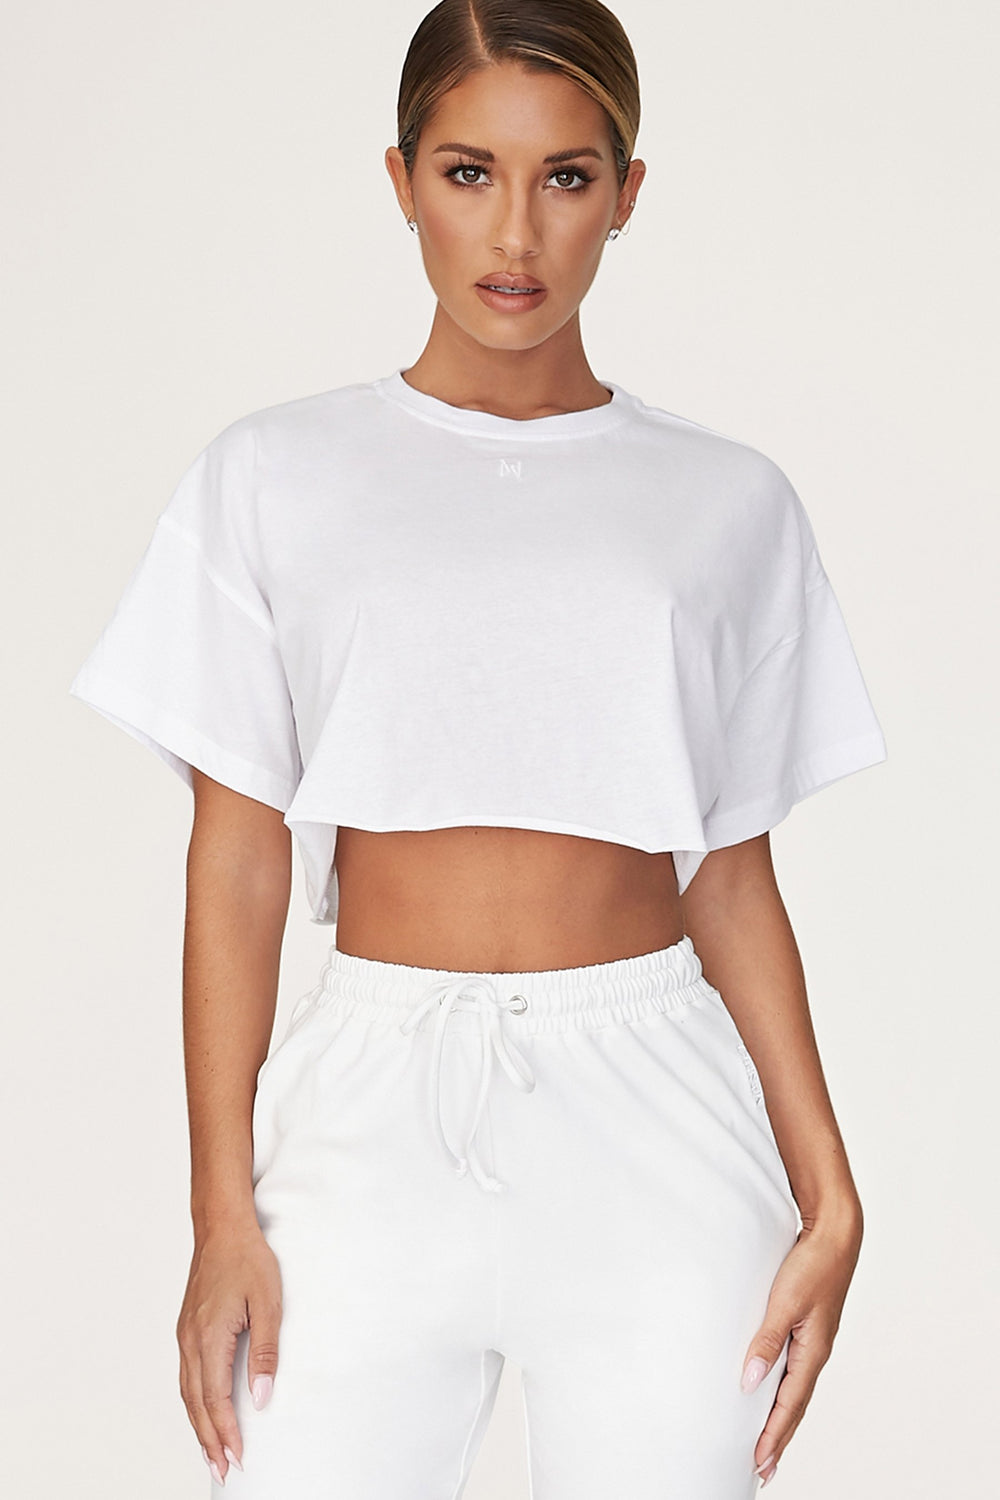 Alix Cropped Oversized T-shirt - White - MESHKI